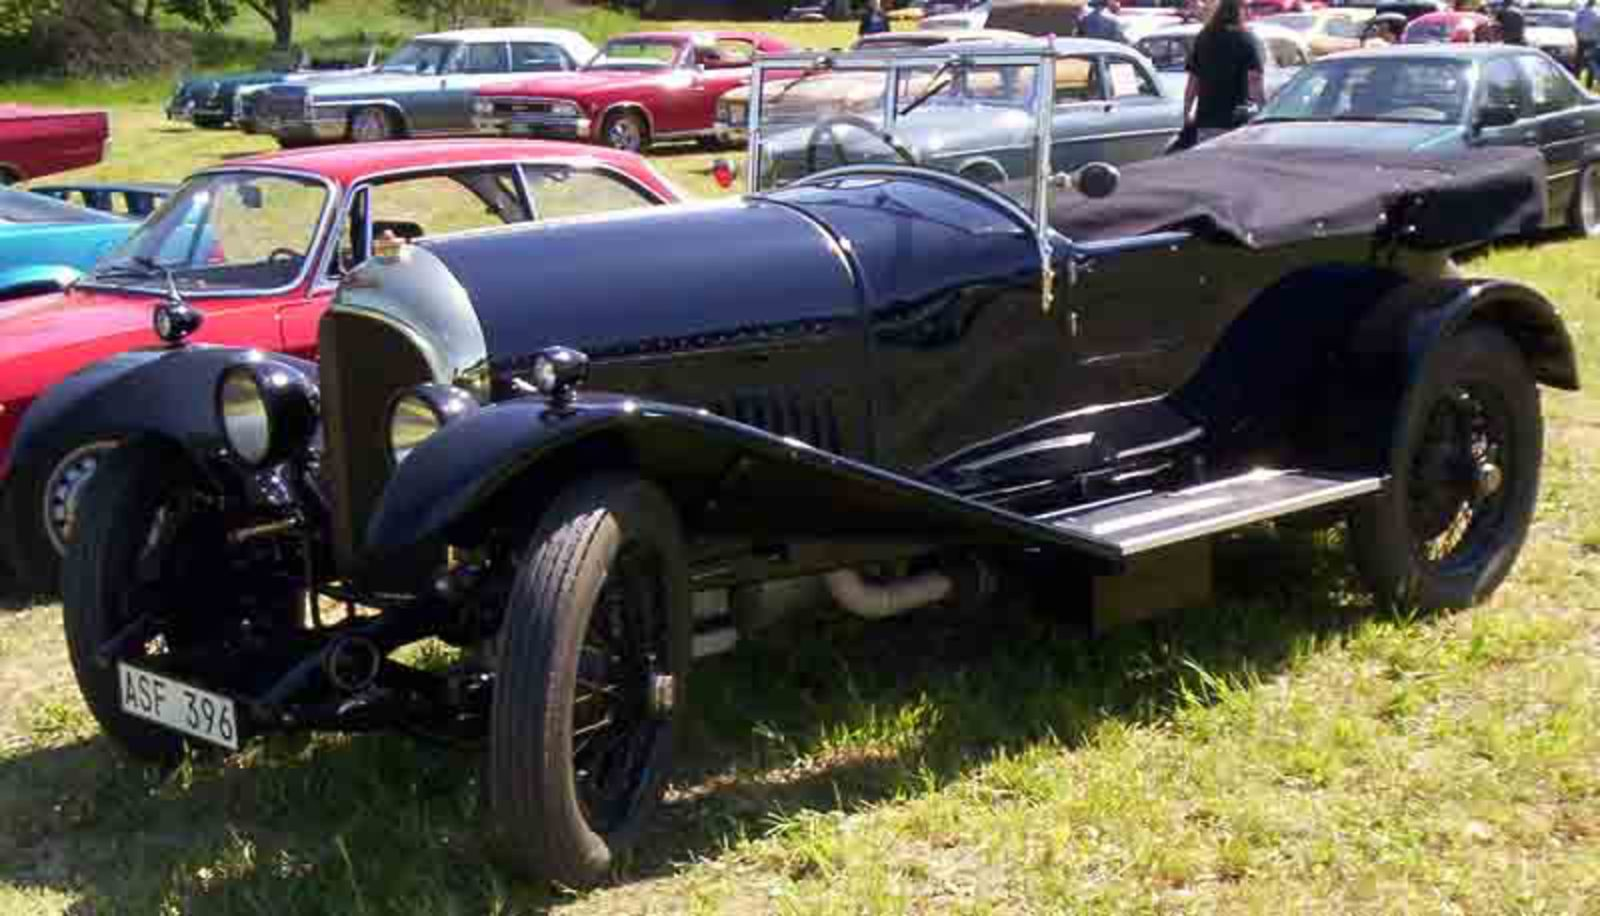 File:Bentley 3-Litre 1924.jpg - Wikimedia Commons